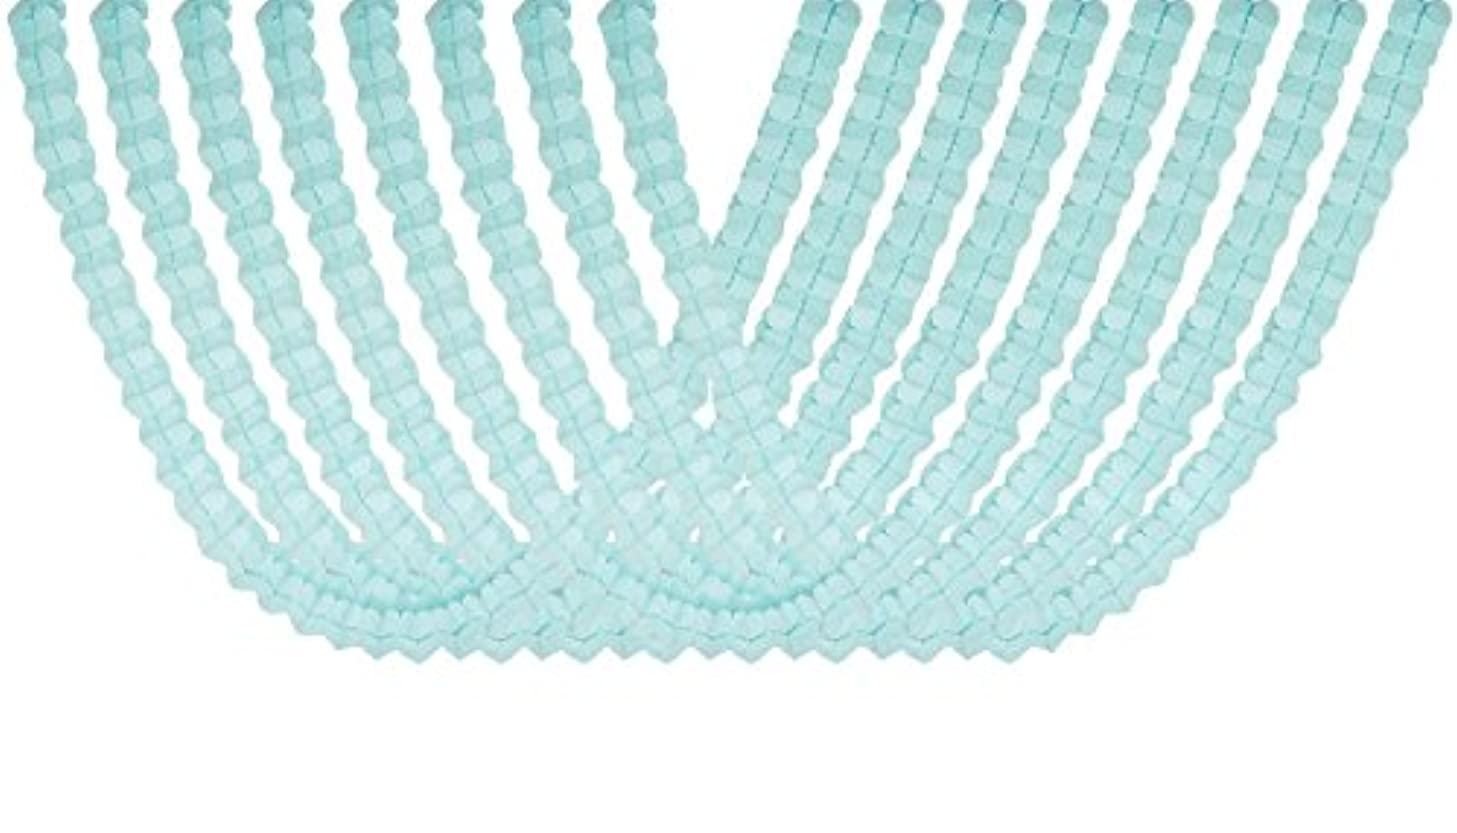 Four Leaf Tissue Paper Hanging Flower Garland for Birthday Party Supplies, Baby Shower Decorations and Streamers Pack of 8 (Light Blue)